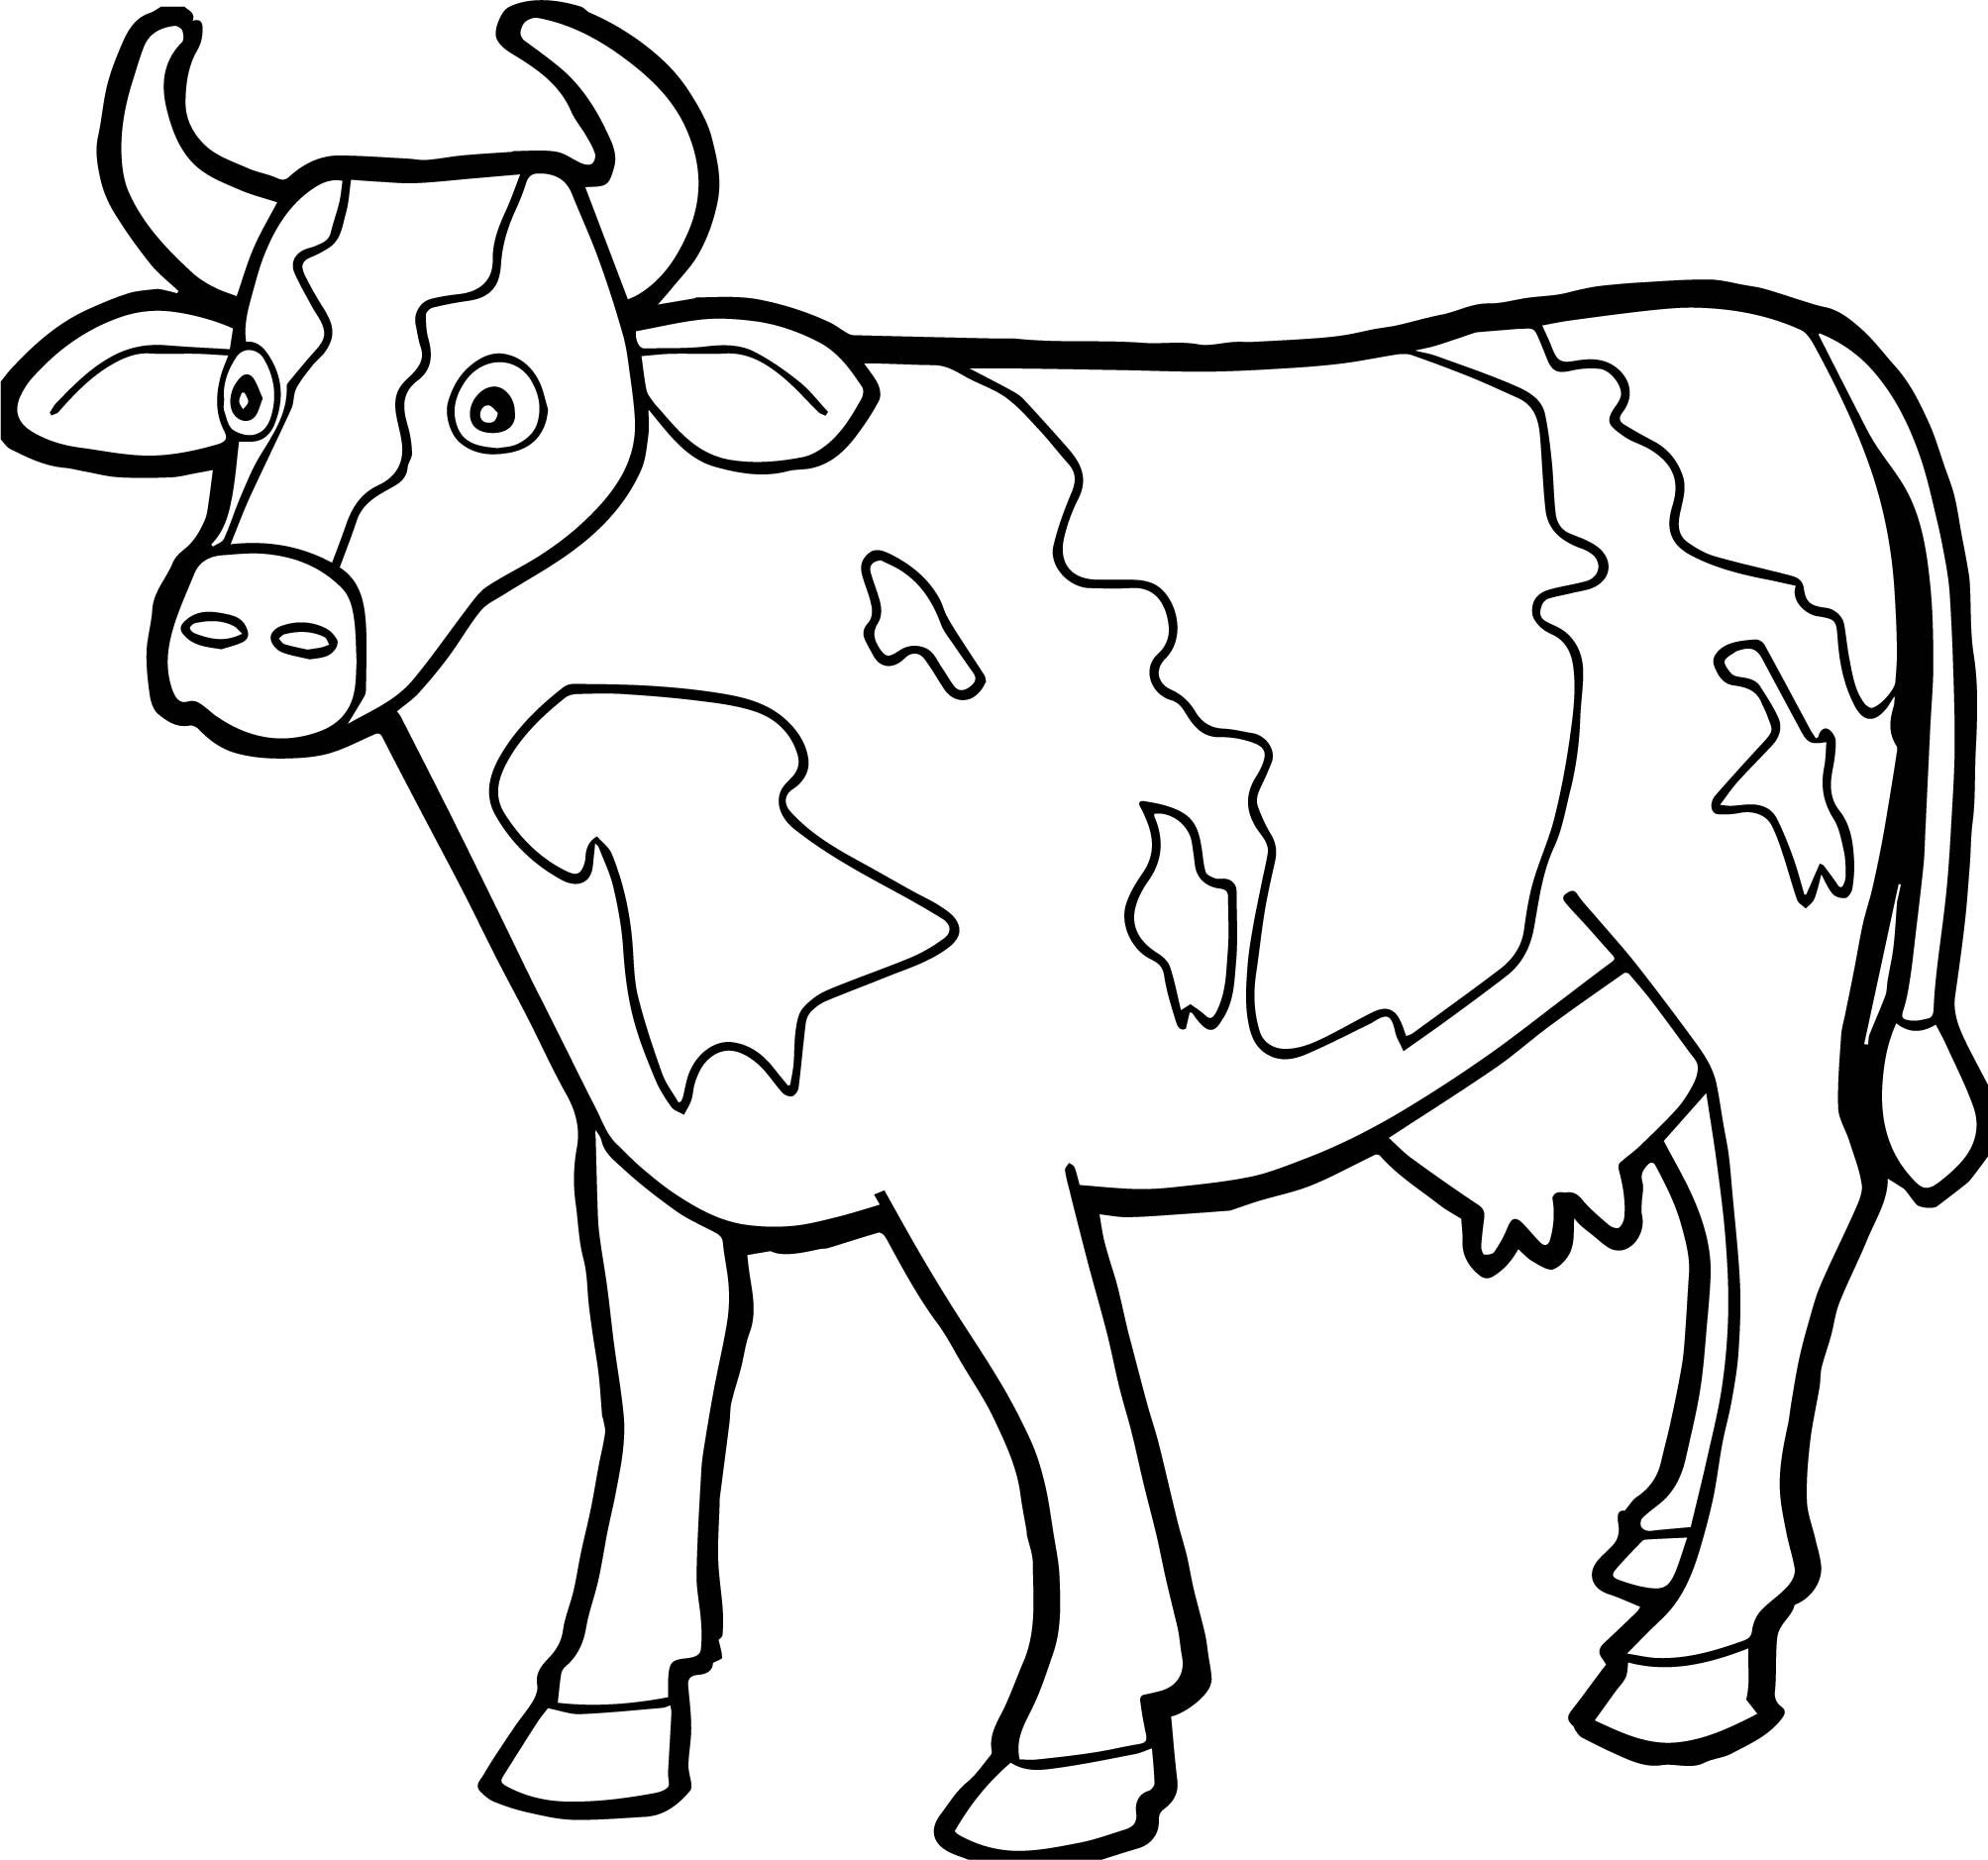 Cow Coloring Pages Of | Coloring Pages - Coloring Pages Of Cows Free Printable